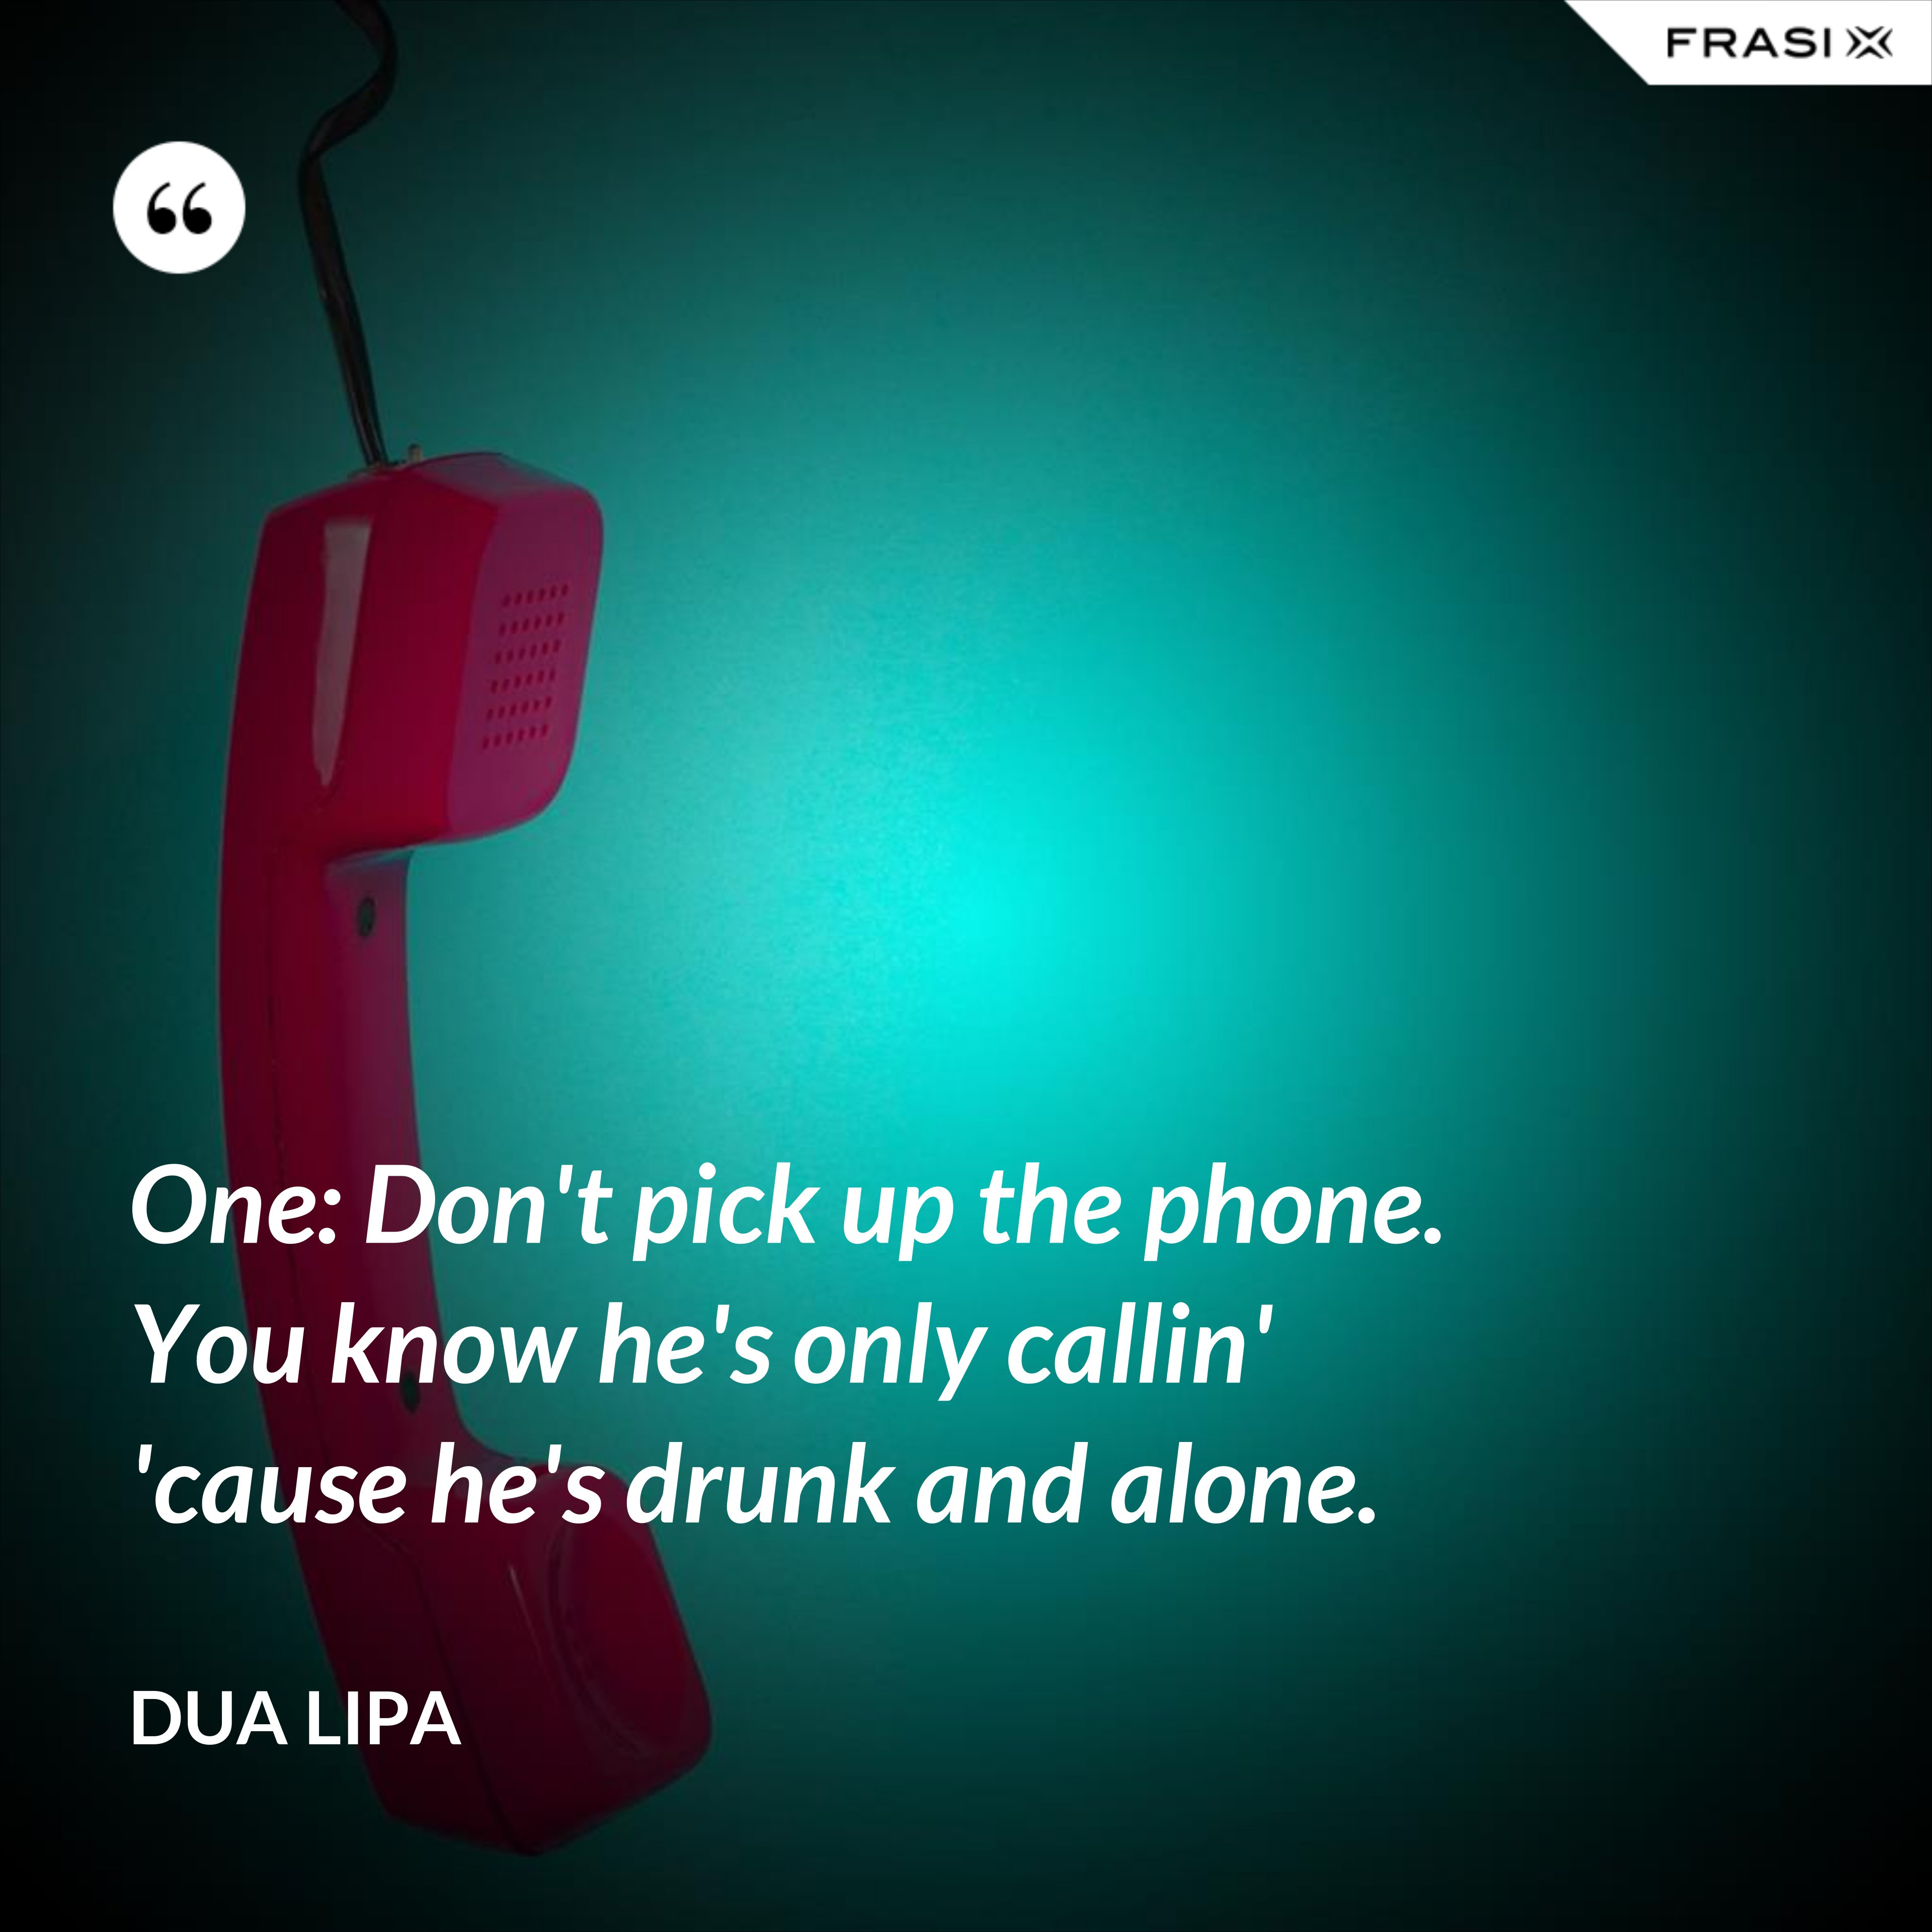 One: Don't pick up the phone. You know he's only callin' 'cause he's drunk and alone. - Dua Lipa